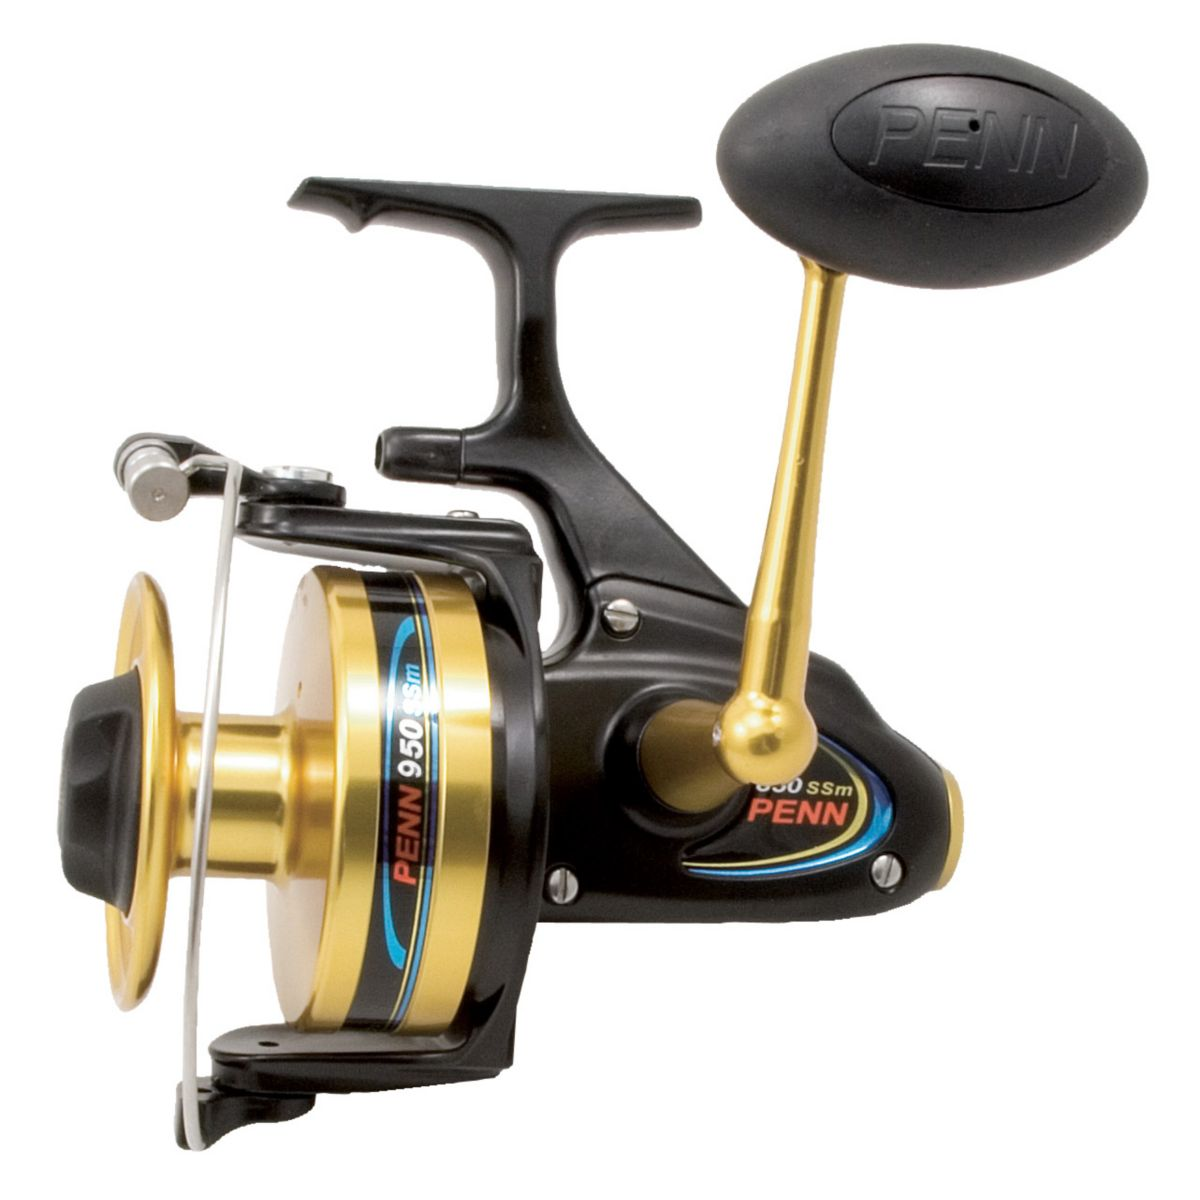 Penn 950SSm Spinfisher Metal Spinning Reel